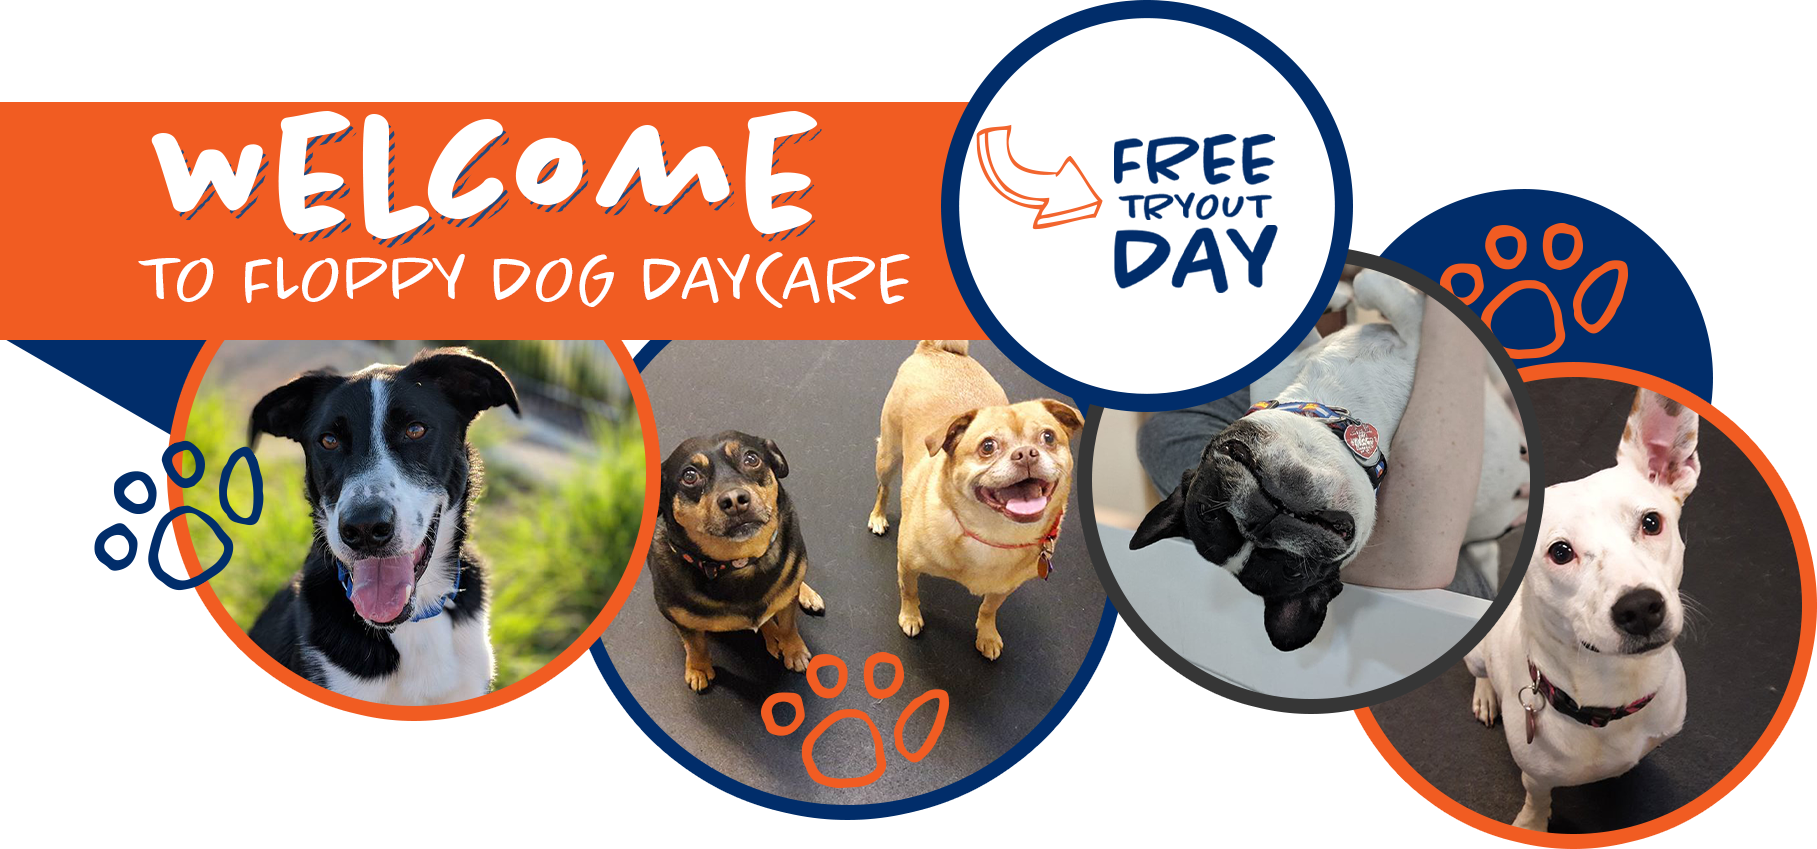 Floppy Dog Daycare - Reserve Your Spot At Our Top-Rated